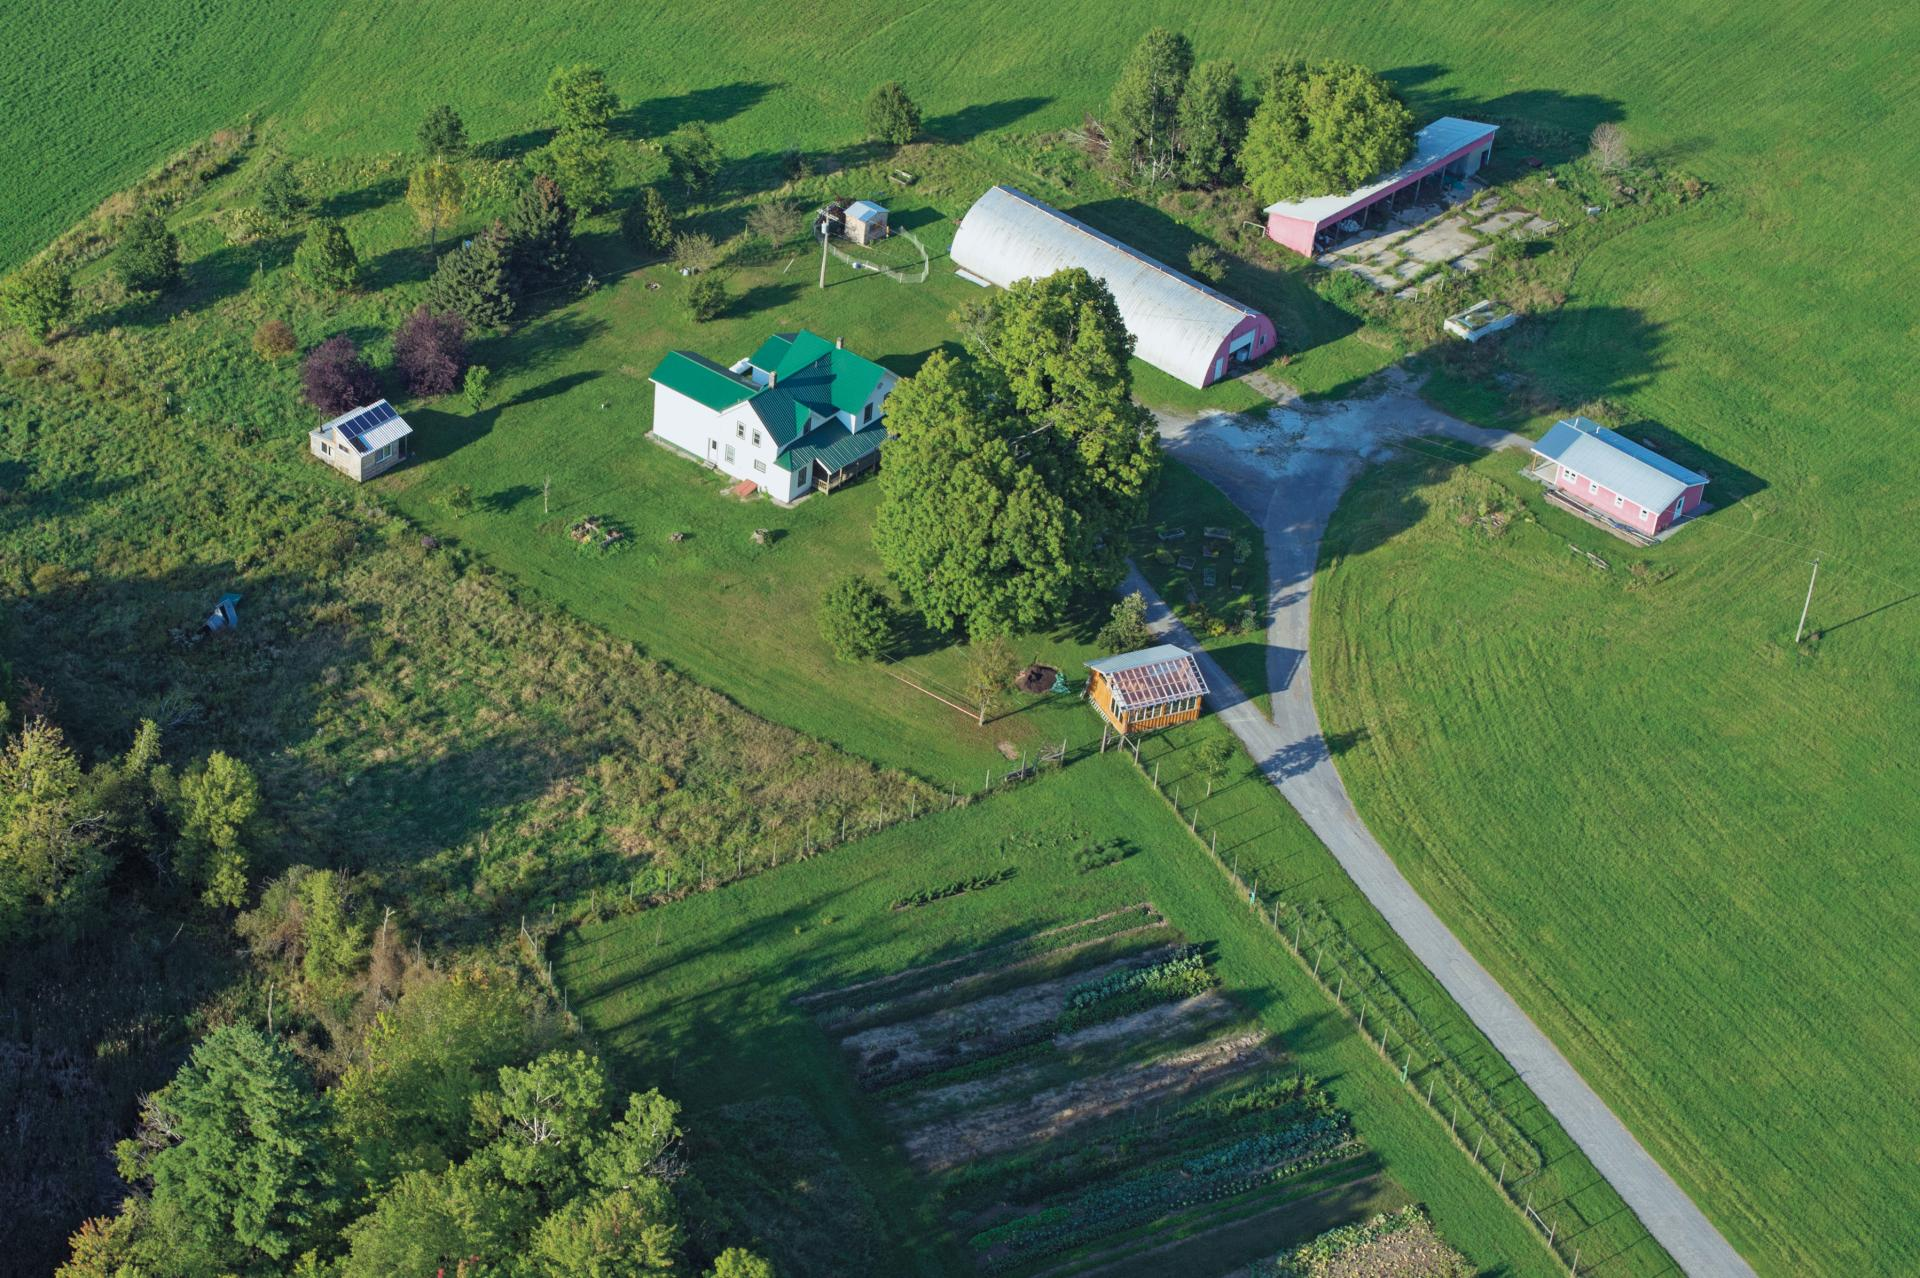 Aerial view of the St. Lawrence Sustainability Farm located on Rt. 68 in Canton, New York.